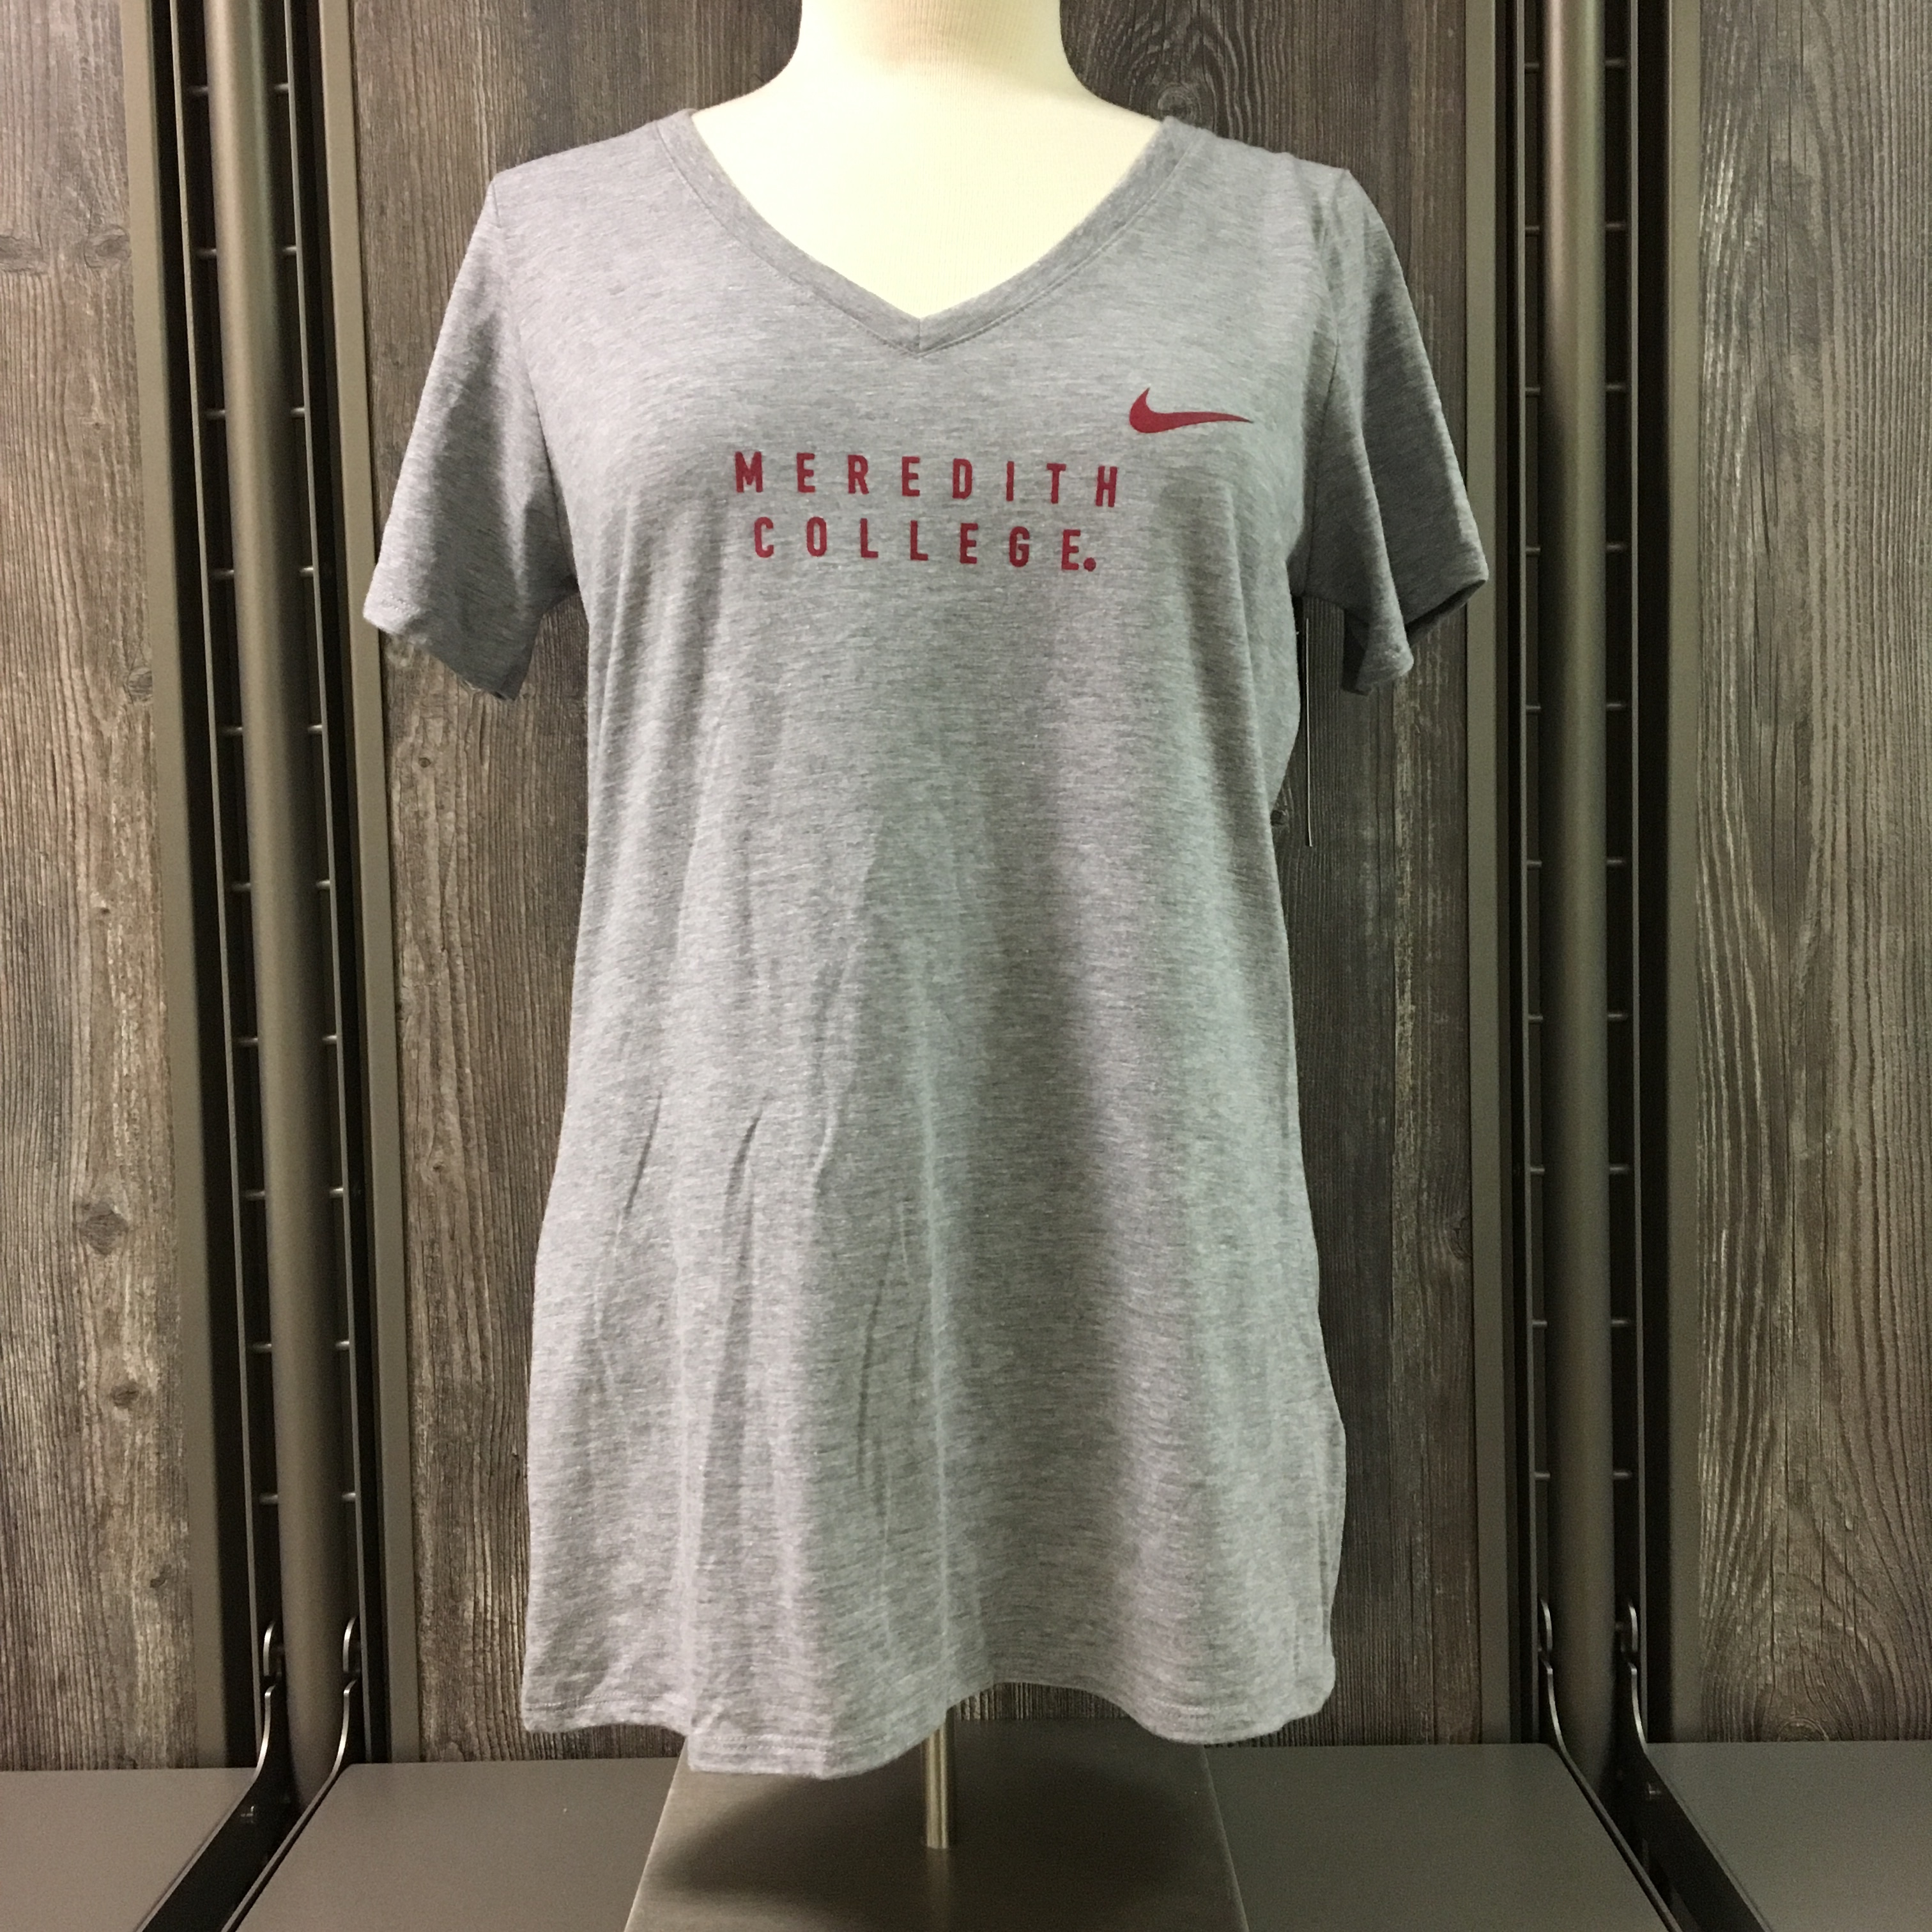 Image for the Tri-Blend V-Neck Tee, Gray with Meredith College product